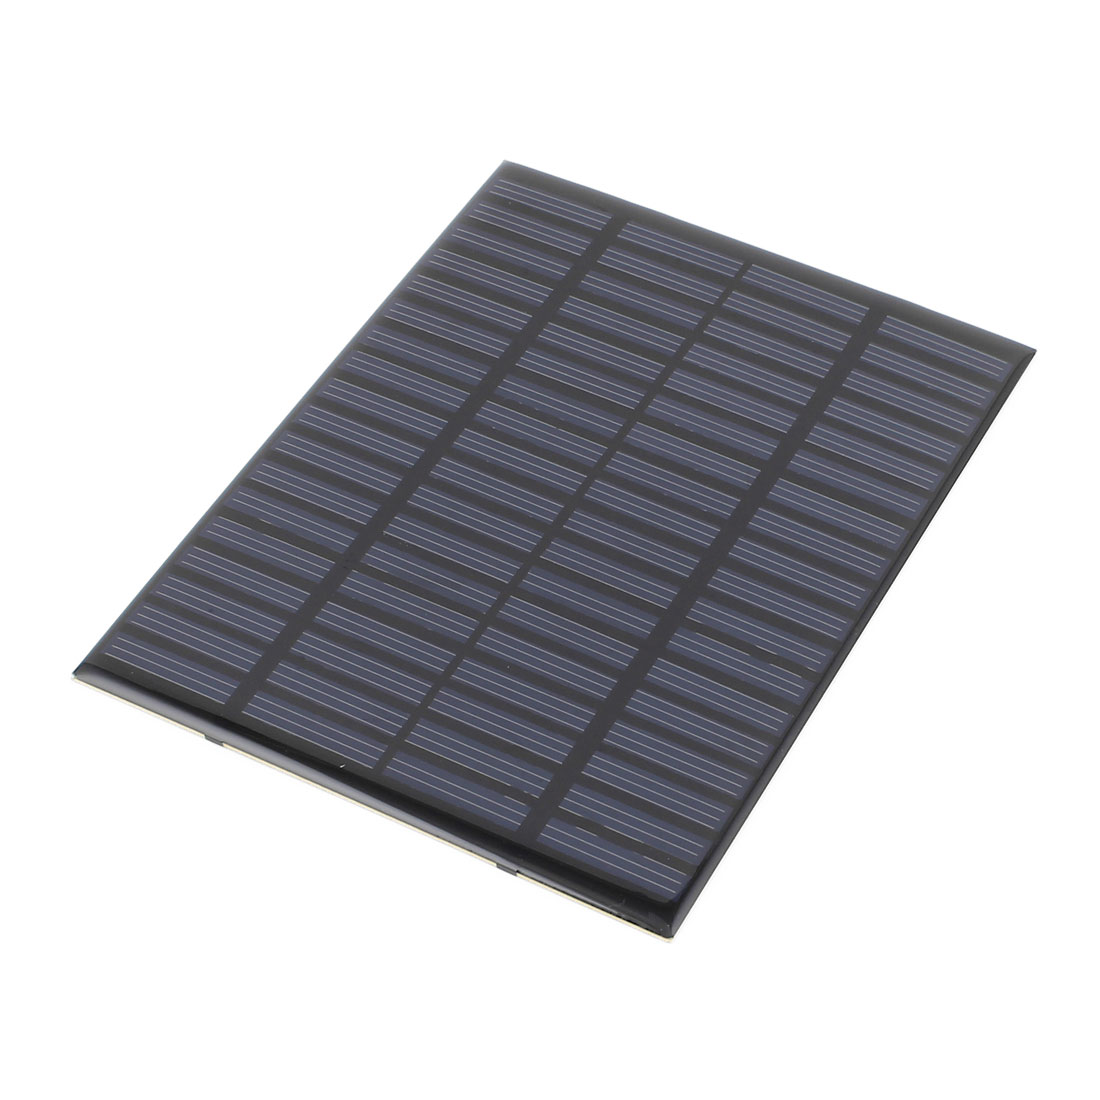 18V 1.5W DIY Polycrystallinesilicon Solar Panel Power Cell Battery Charger 140mm x 110mm